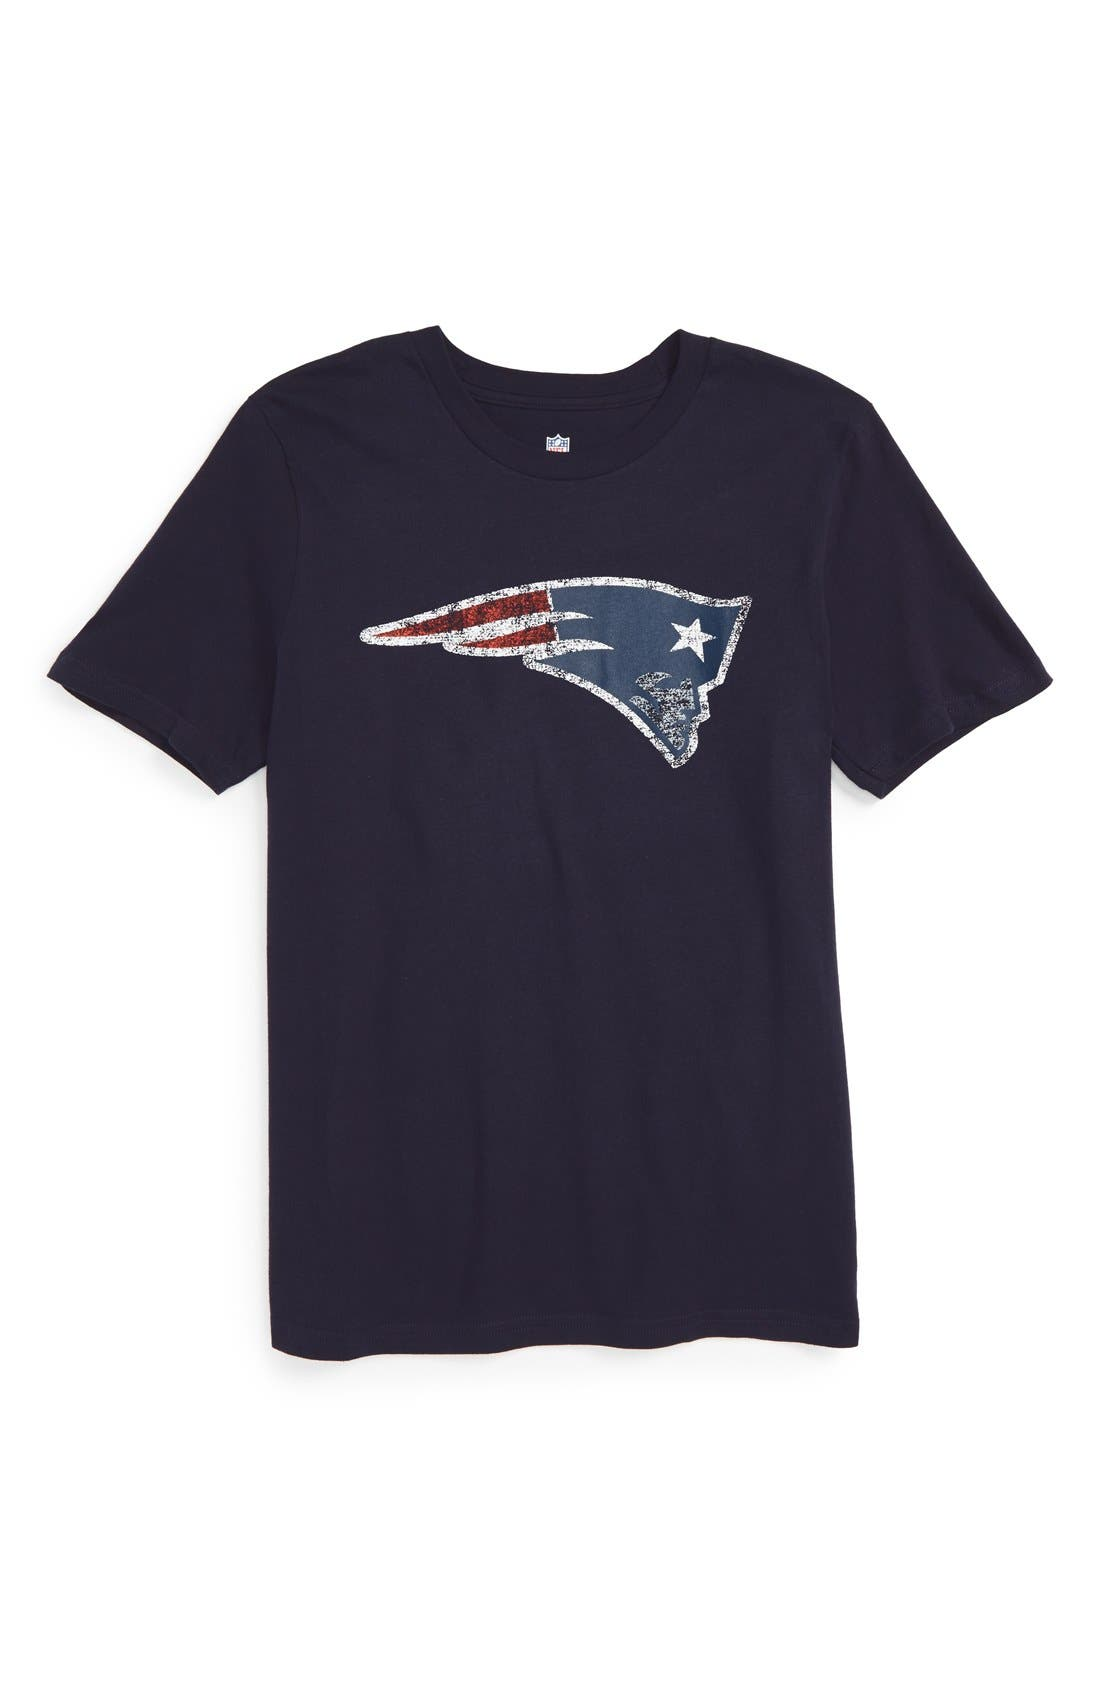 'NFL - New England Patriots' Distressed Logo Graphic T-Shirt,                         Main,                         color,